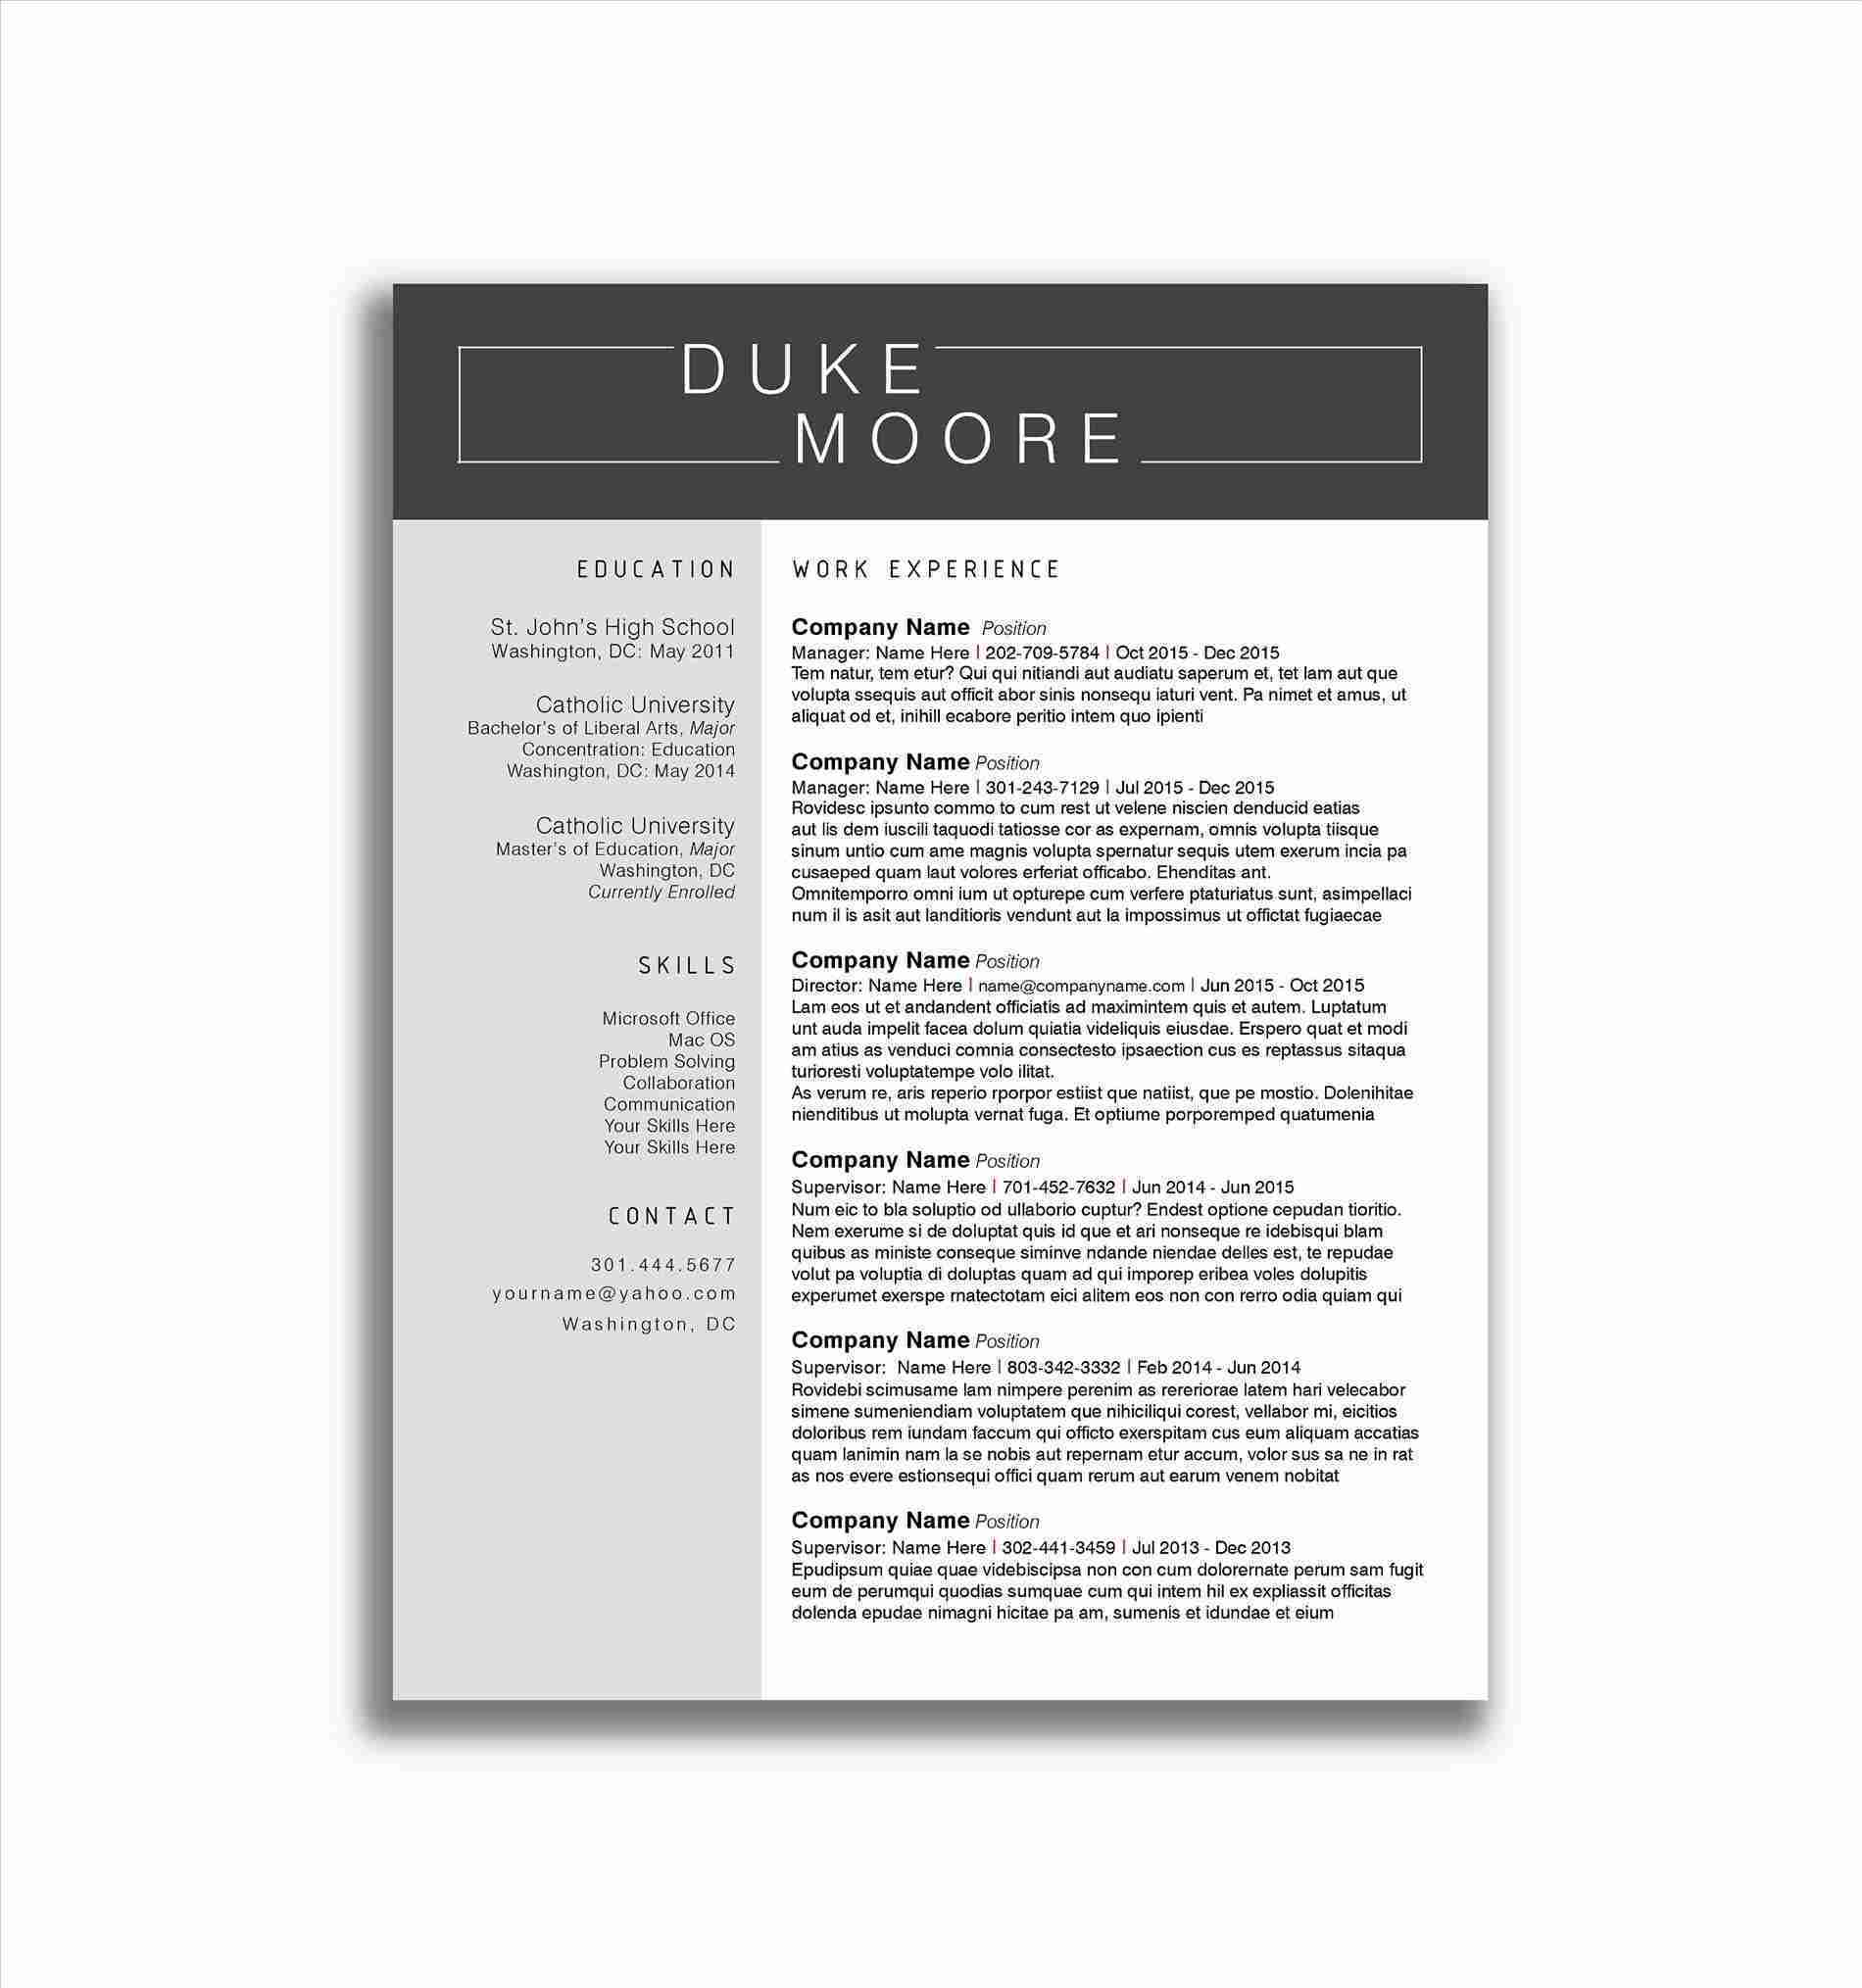 sketch resume template example-sketch 3 resume template 20-a